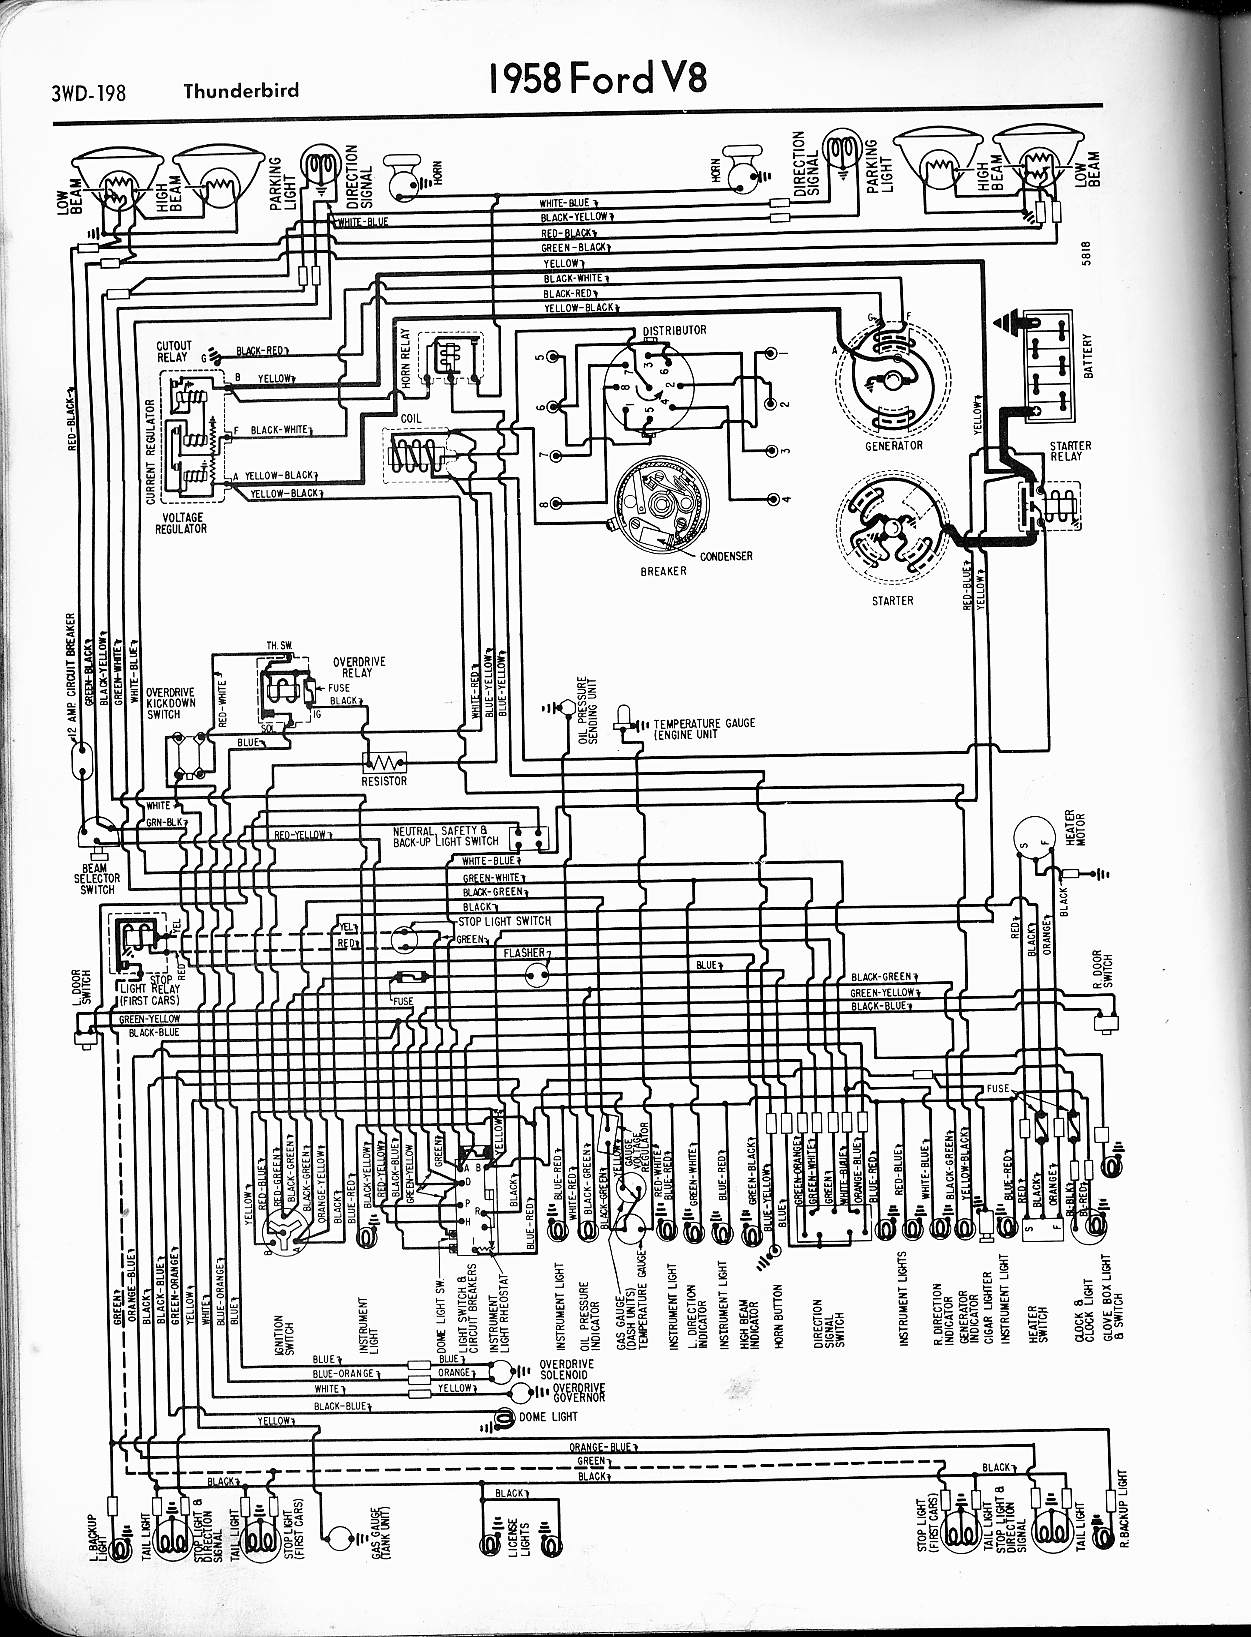 1958 Thunderbird Wiring Diagram Library 34 Ford Project Circuit Breaker